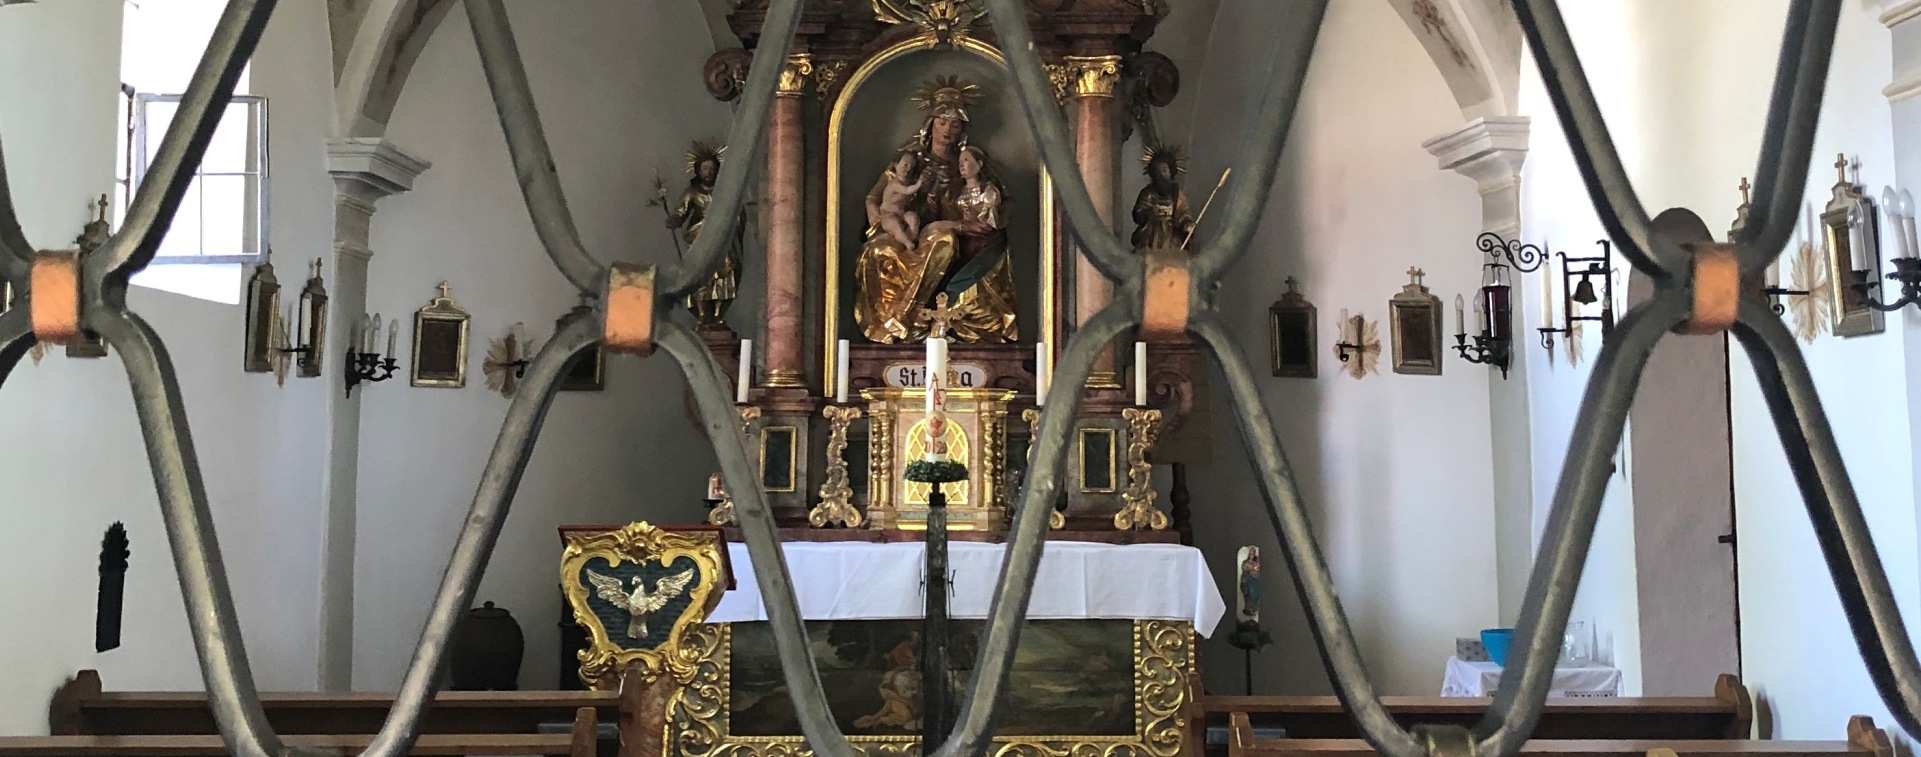 Altar in der Kapelle in Annabrunn